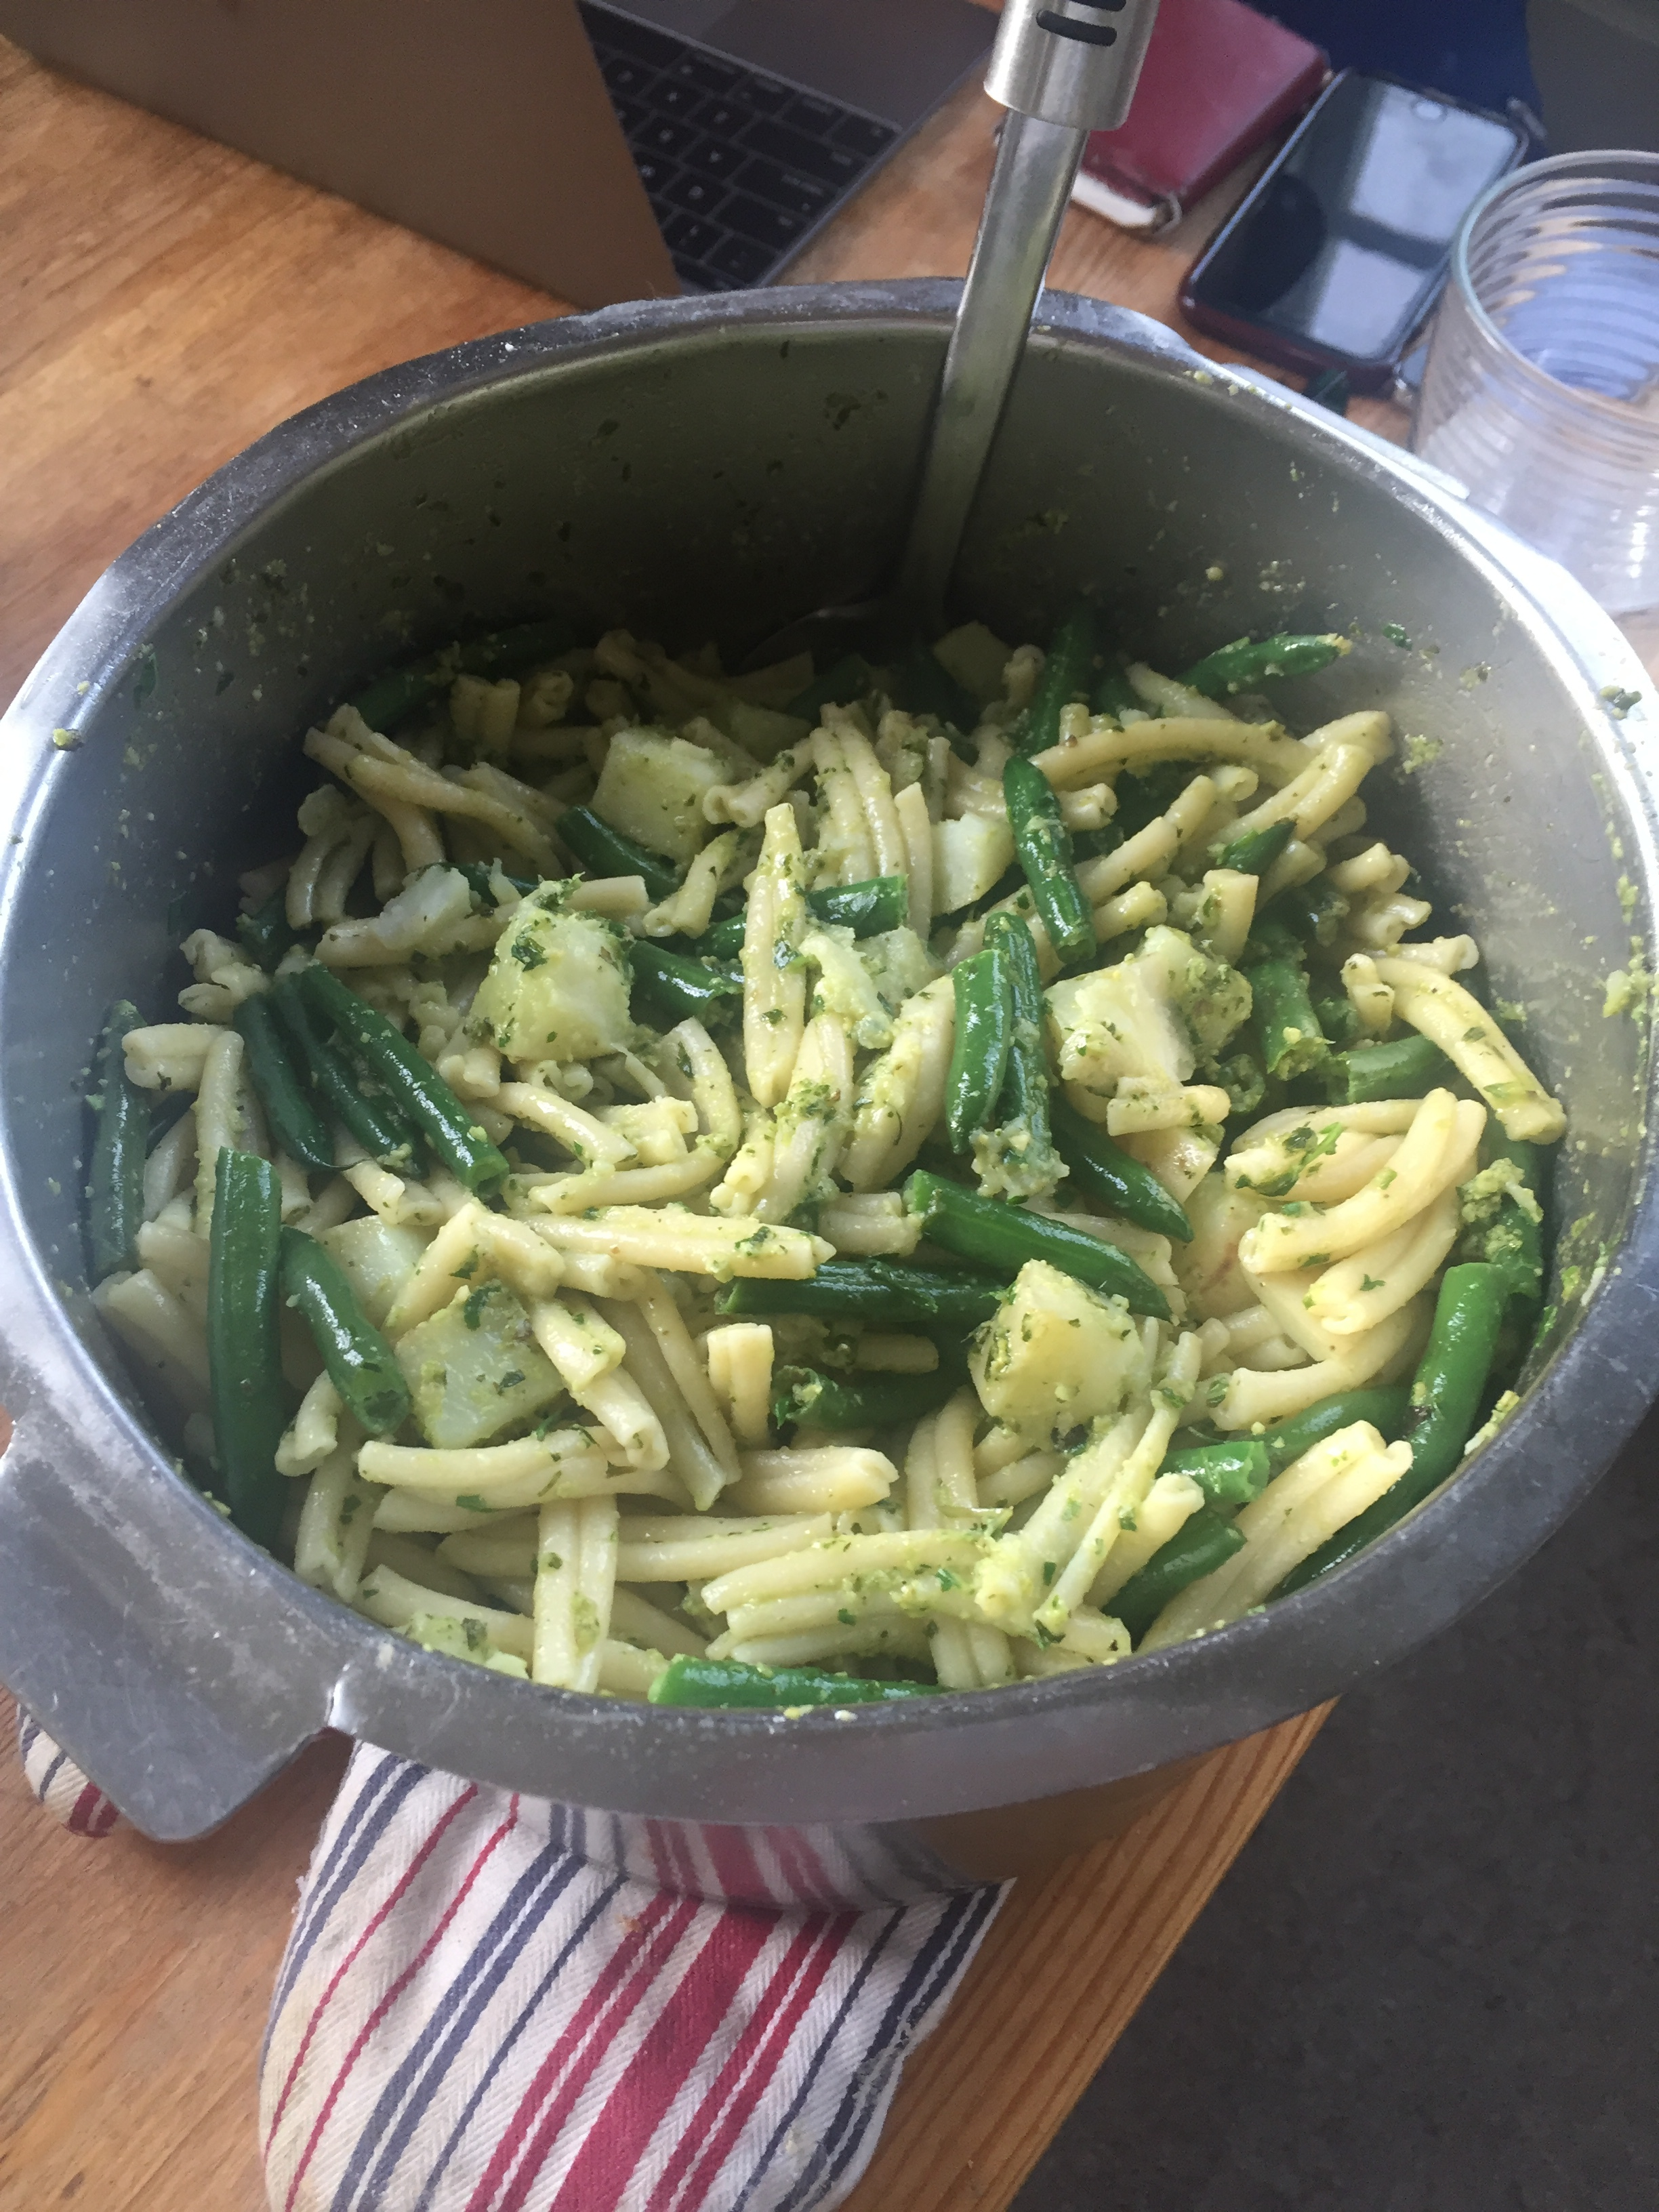 Pesto pasta with string beans + potatoes - one of many insanely fresh and delicious meals by Alex + Annabeth